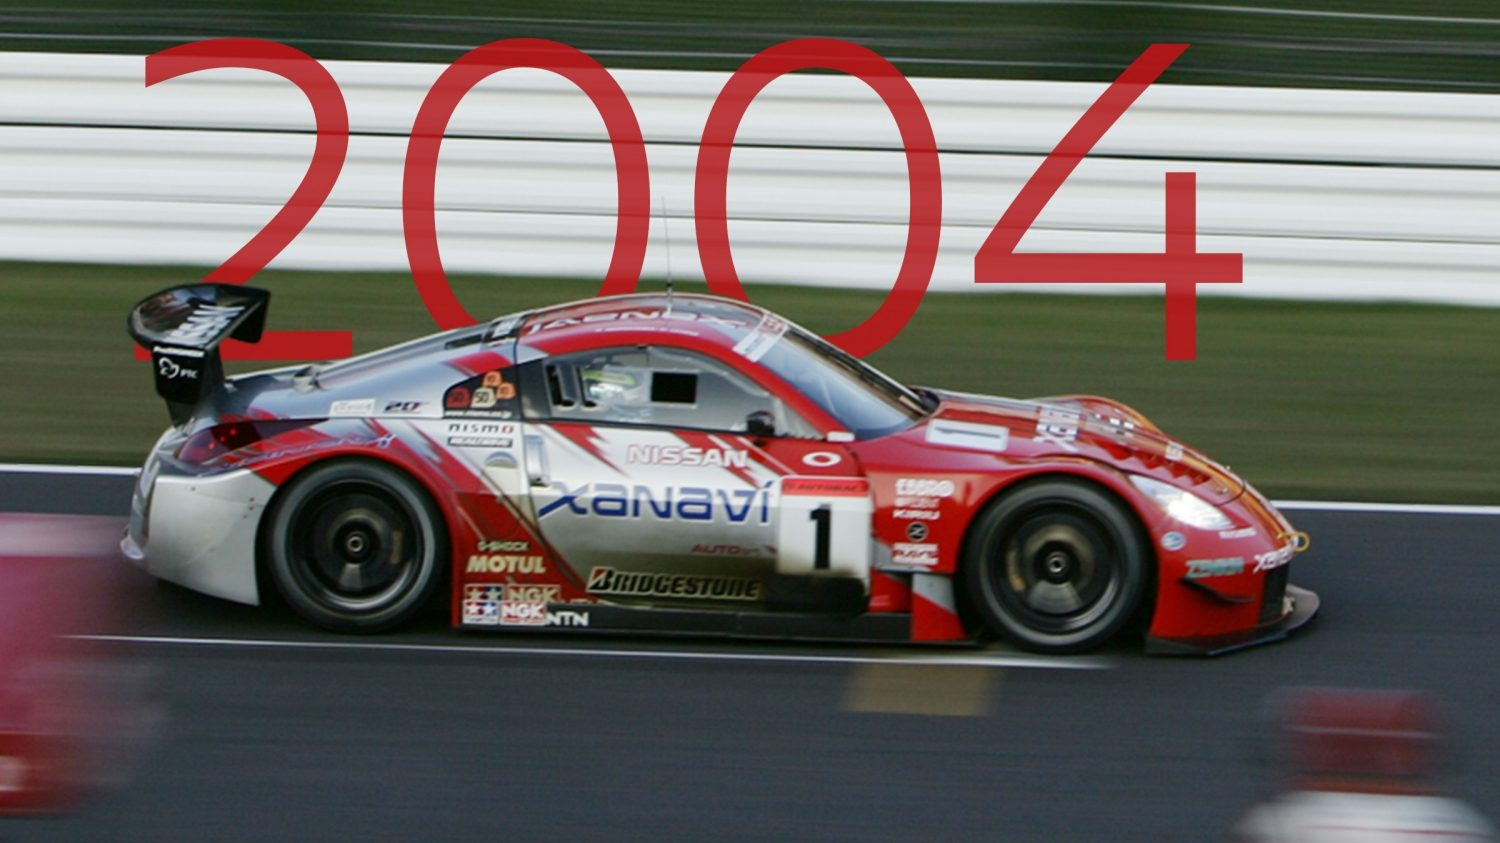 2004 Fairlady Z compitiendo en All-Japan GT Championship